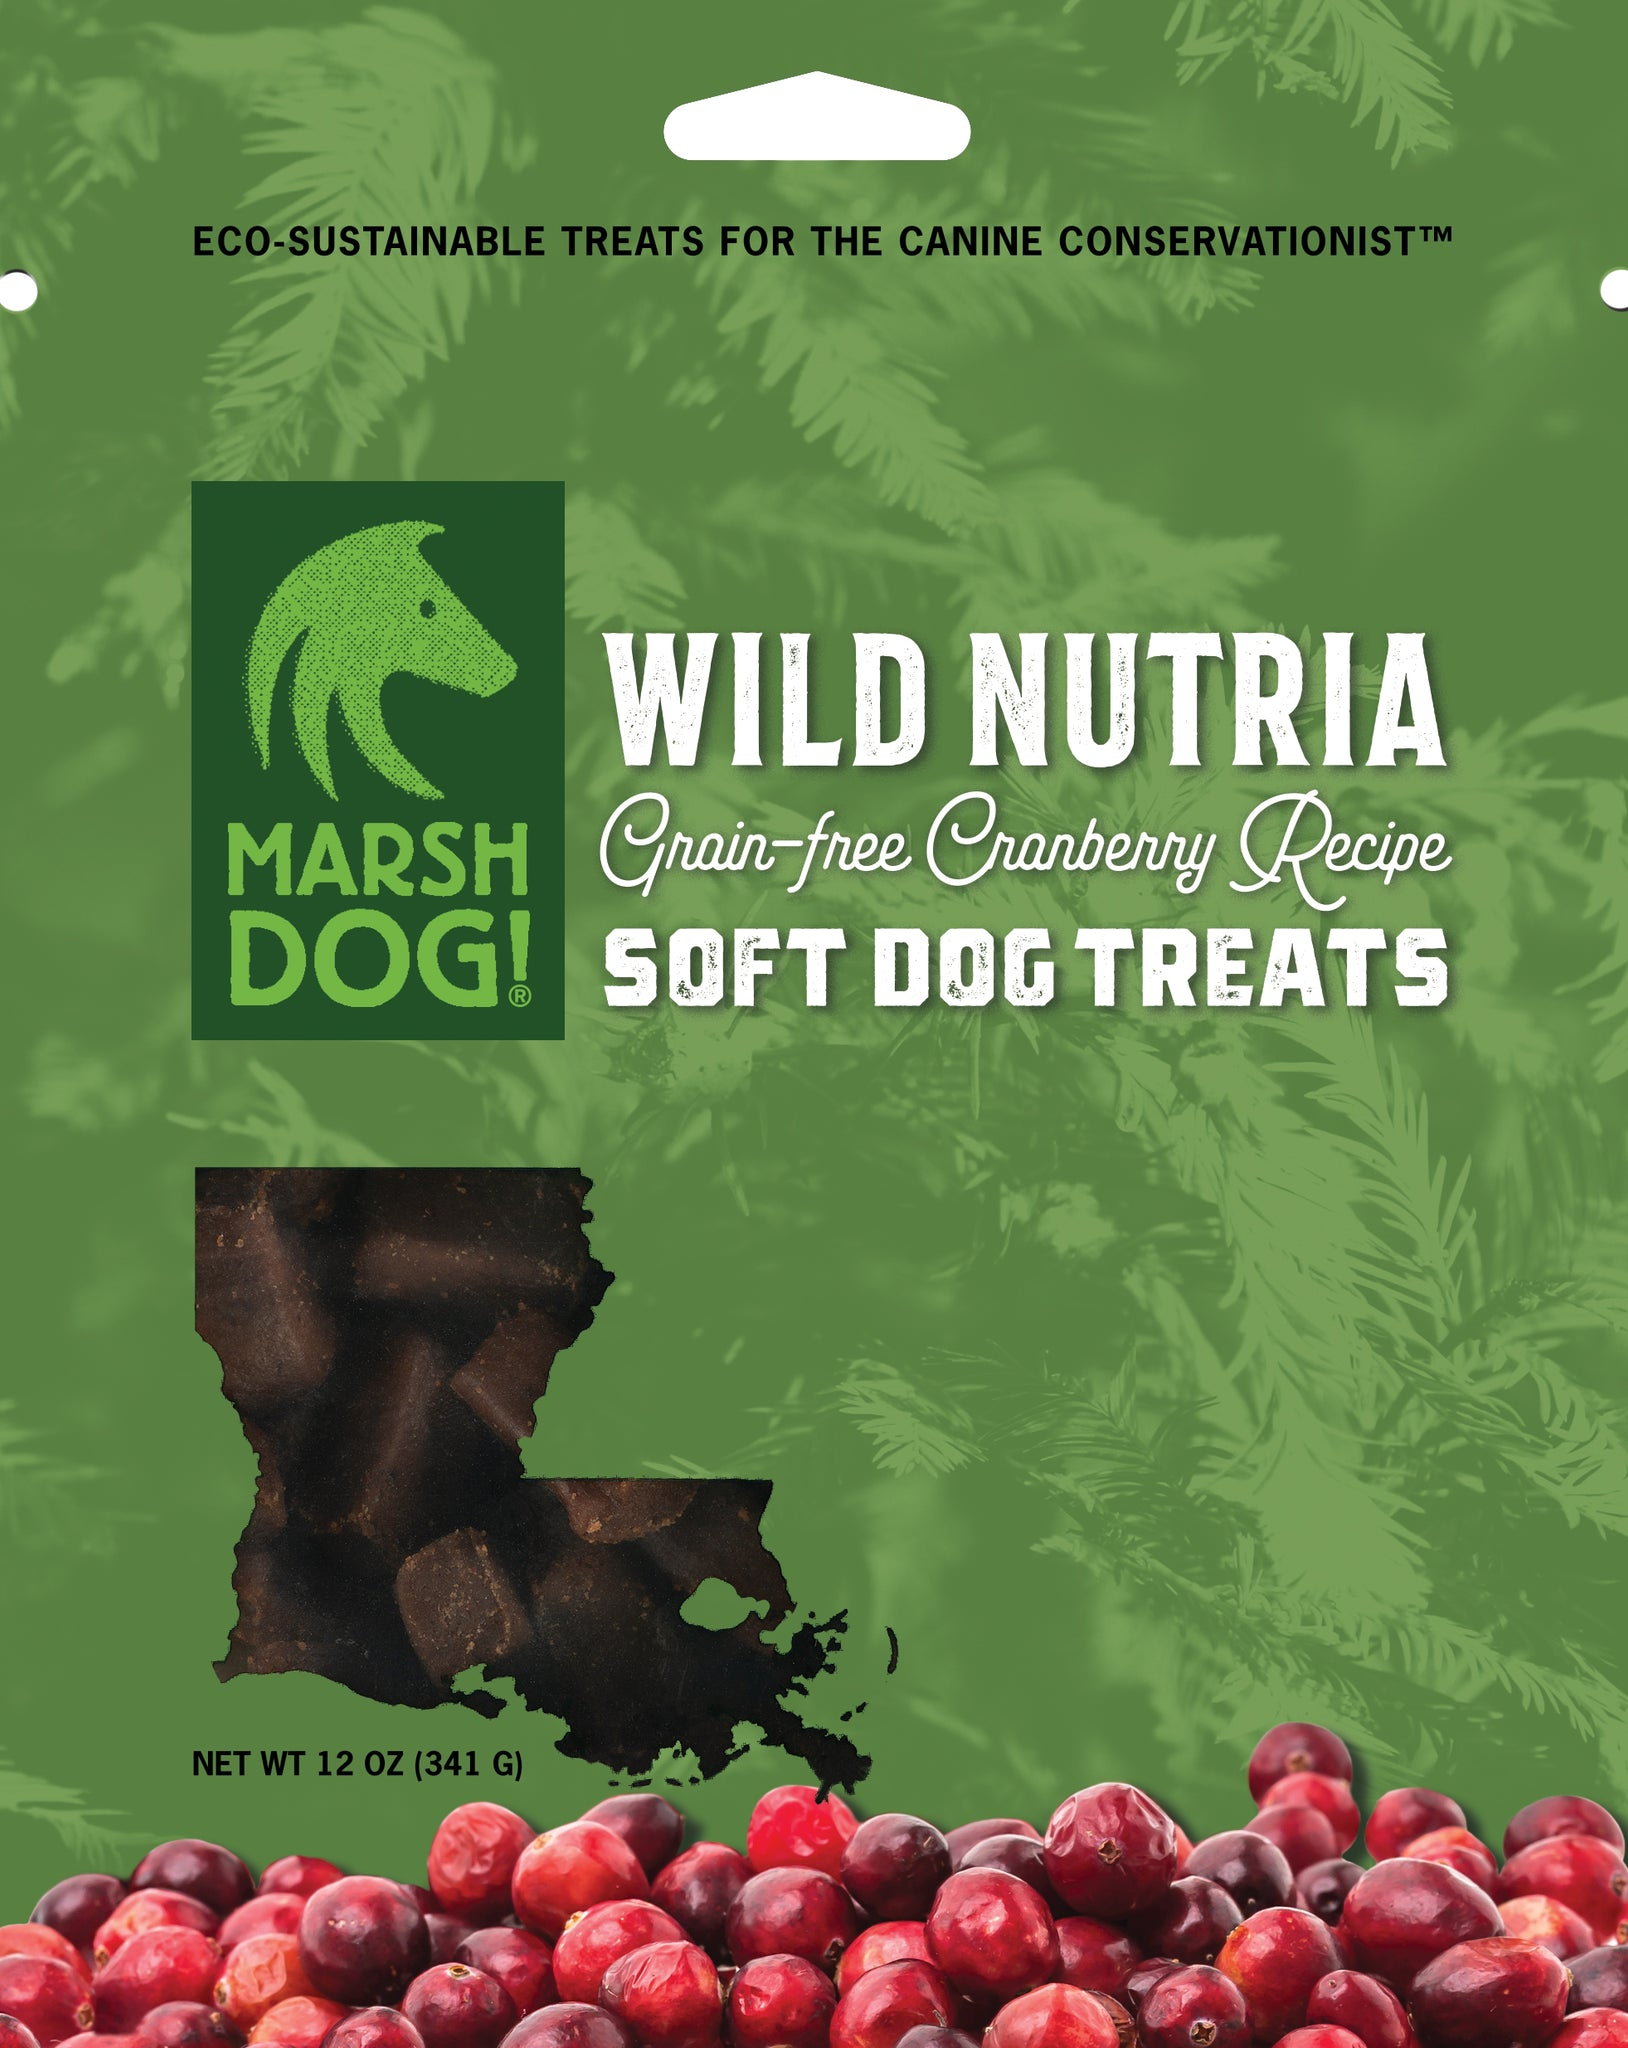 Wild Nutria Grain-free Cranberry Recipe | Soft Dog Treats